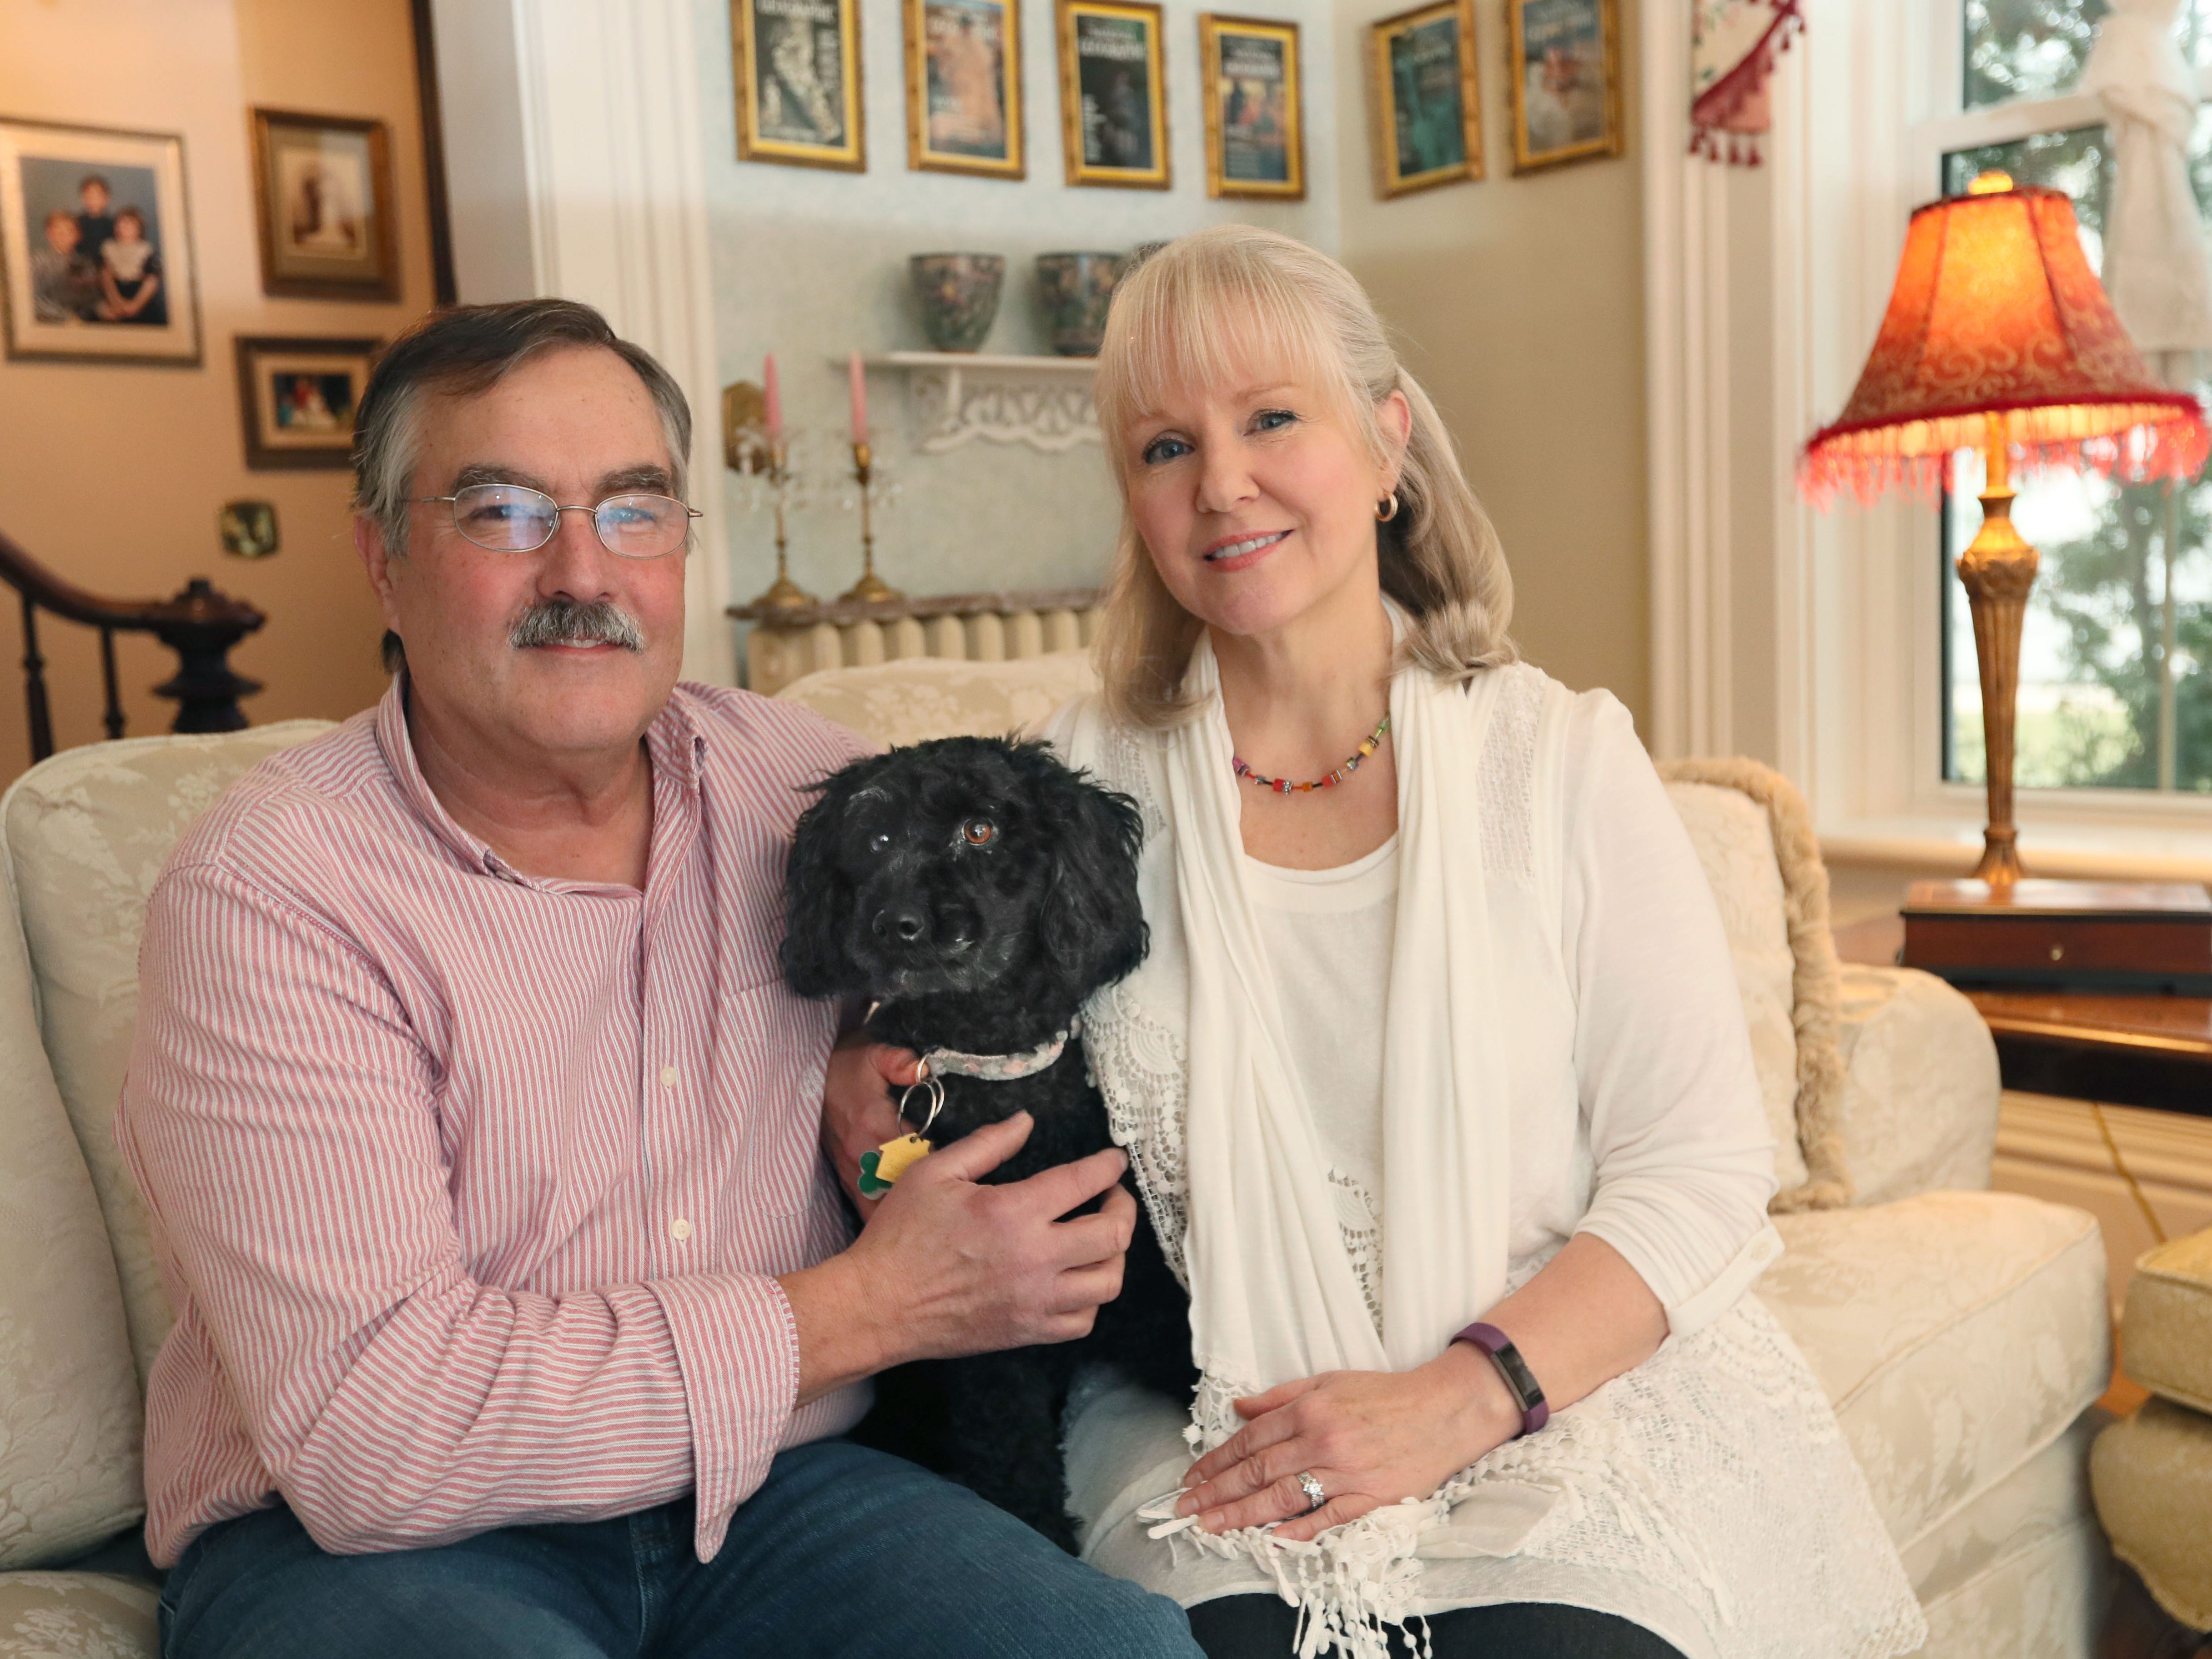 Peter and Dionne Kelm are shown here in the parlor with their dog Winnie.